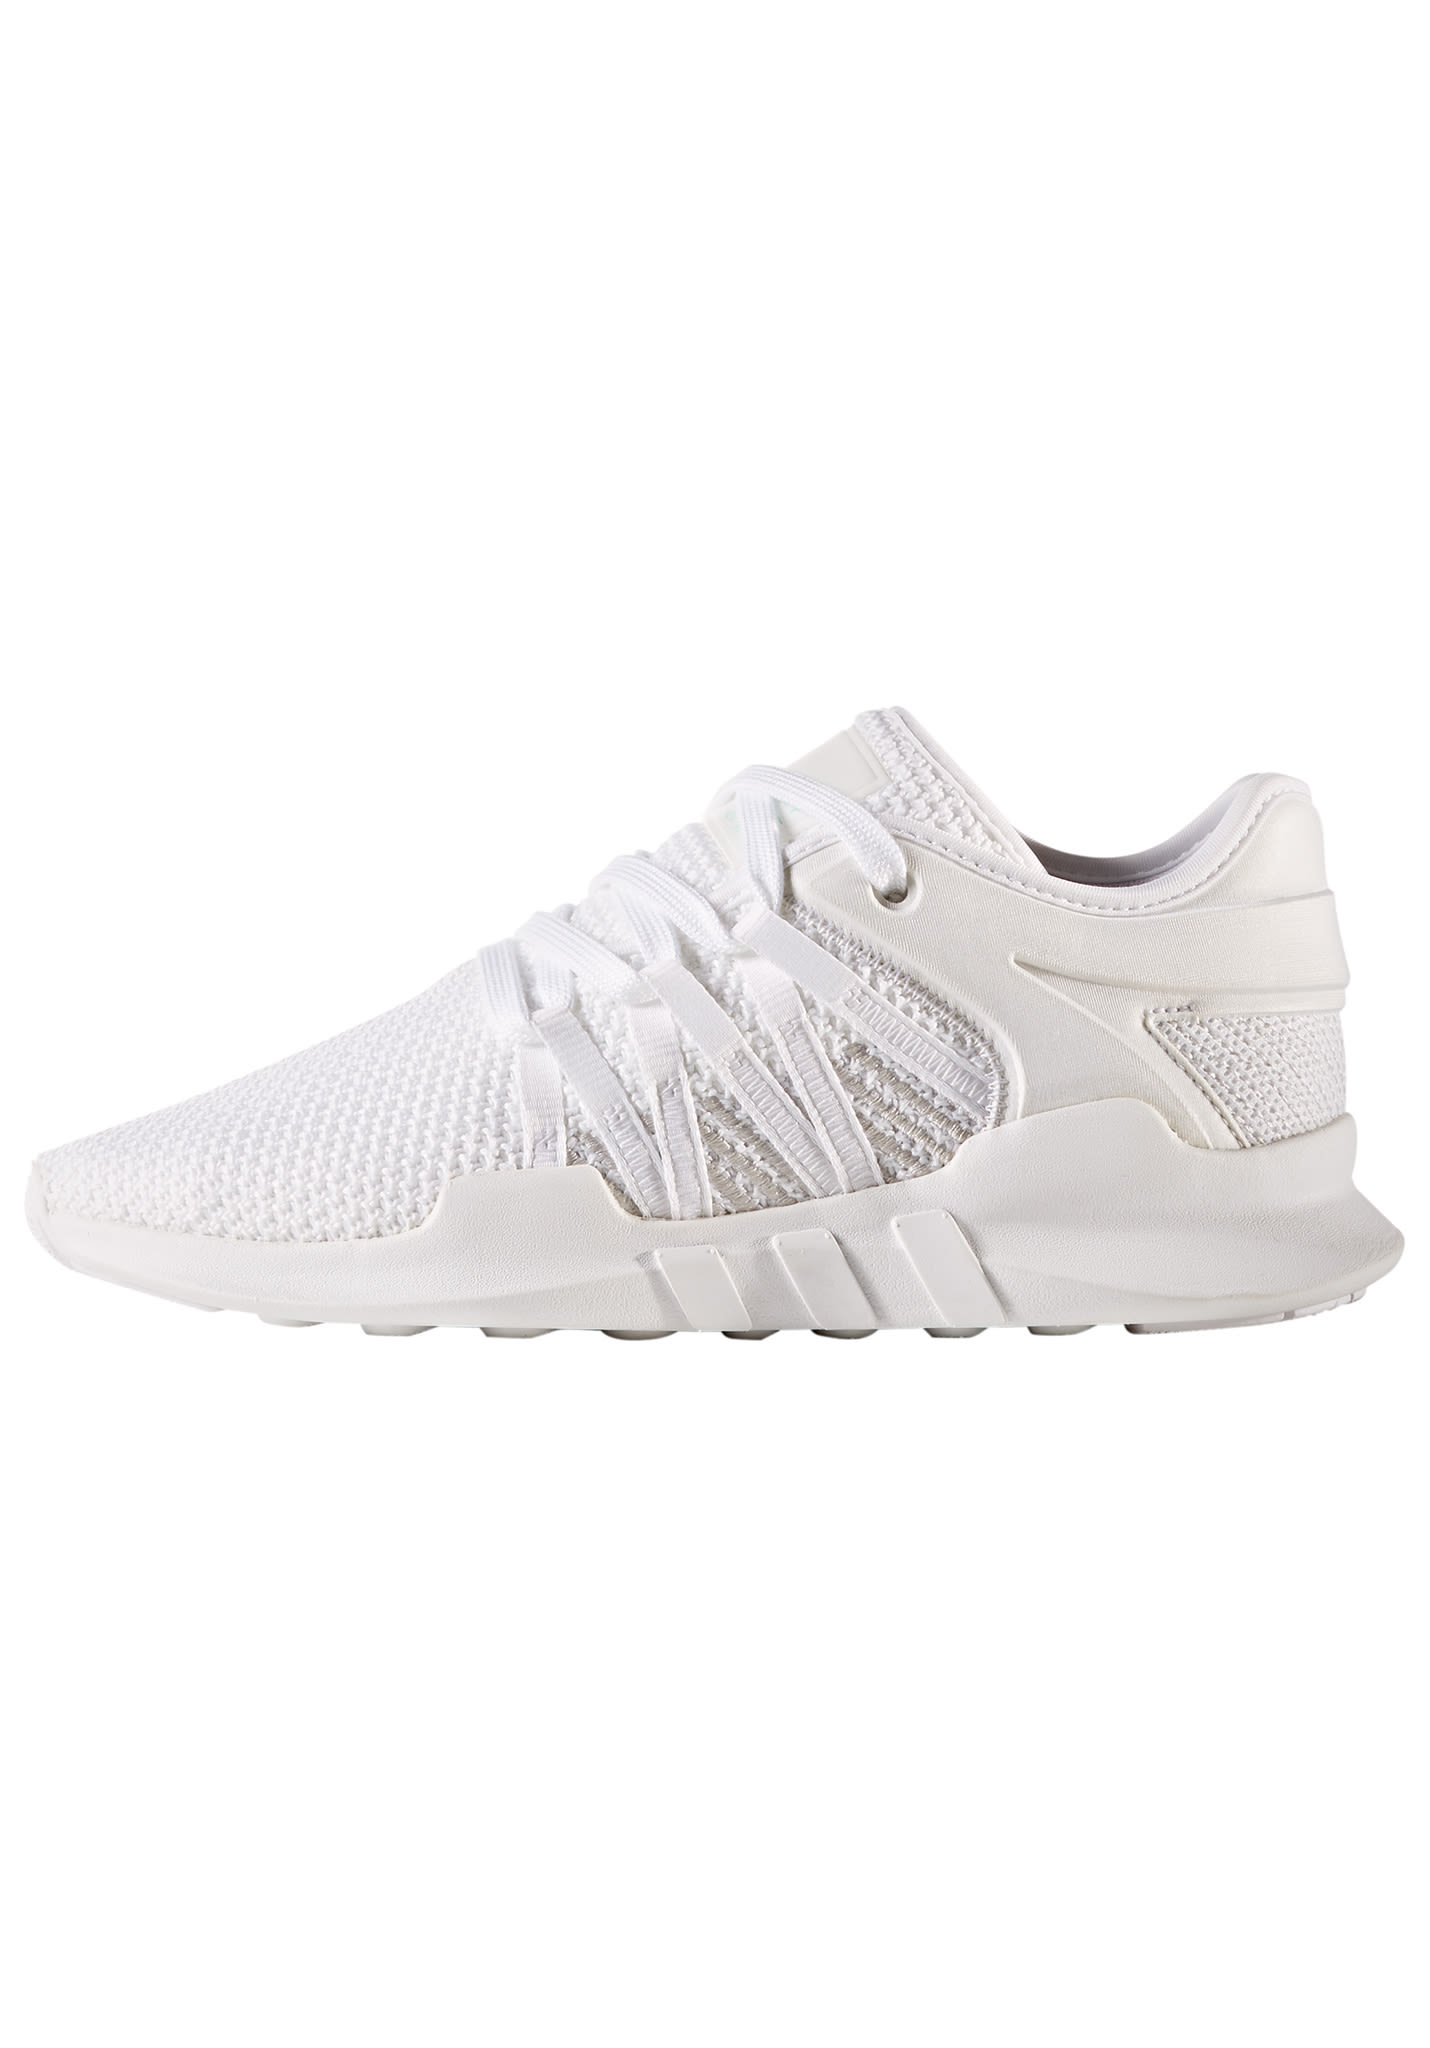 ADIDAS Eqt Racing Adv - Sneakers for Women - White